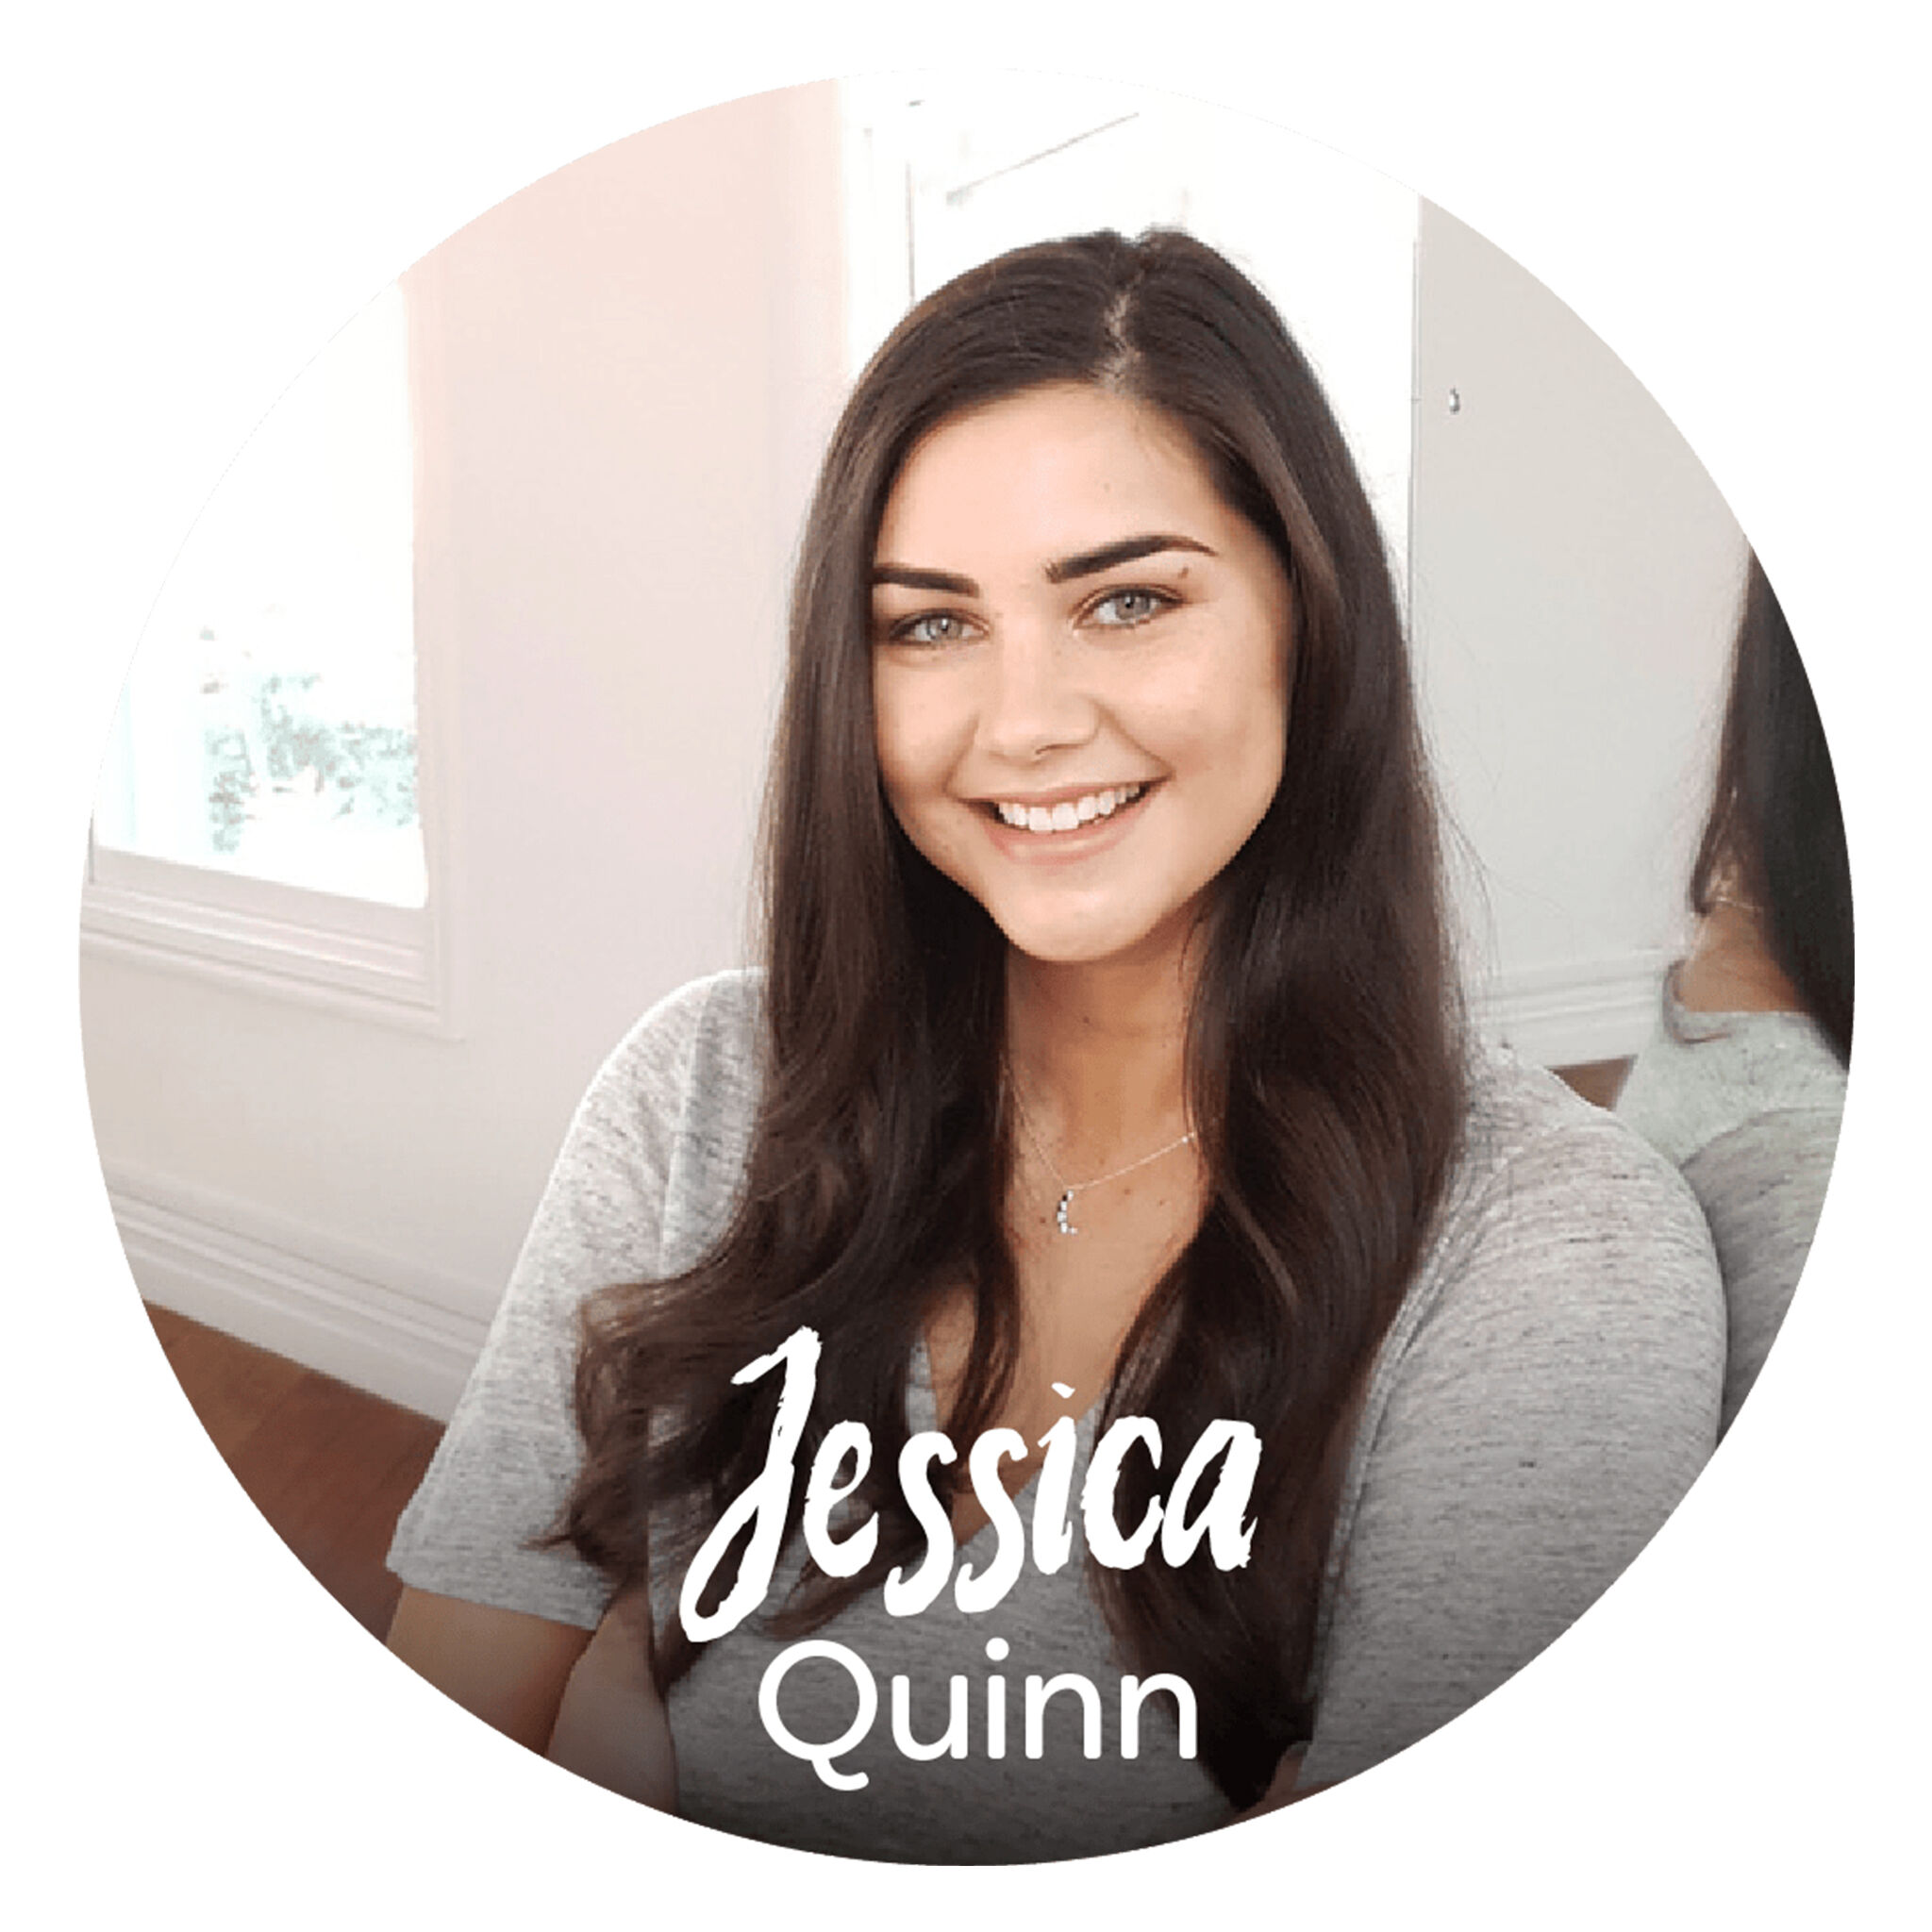 A picture of Jess Quinn